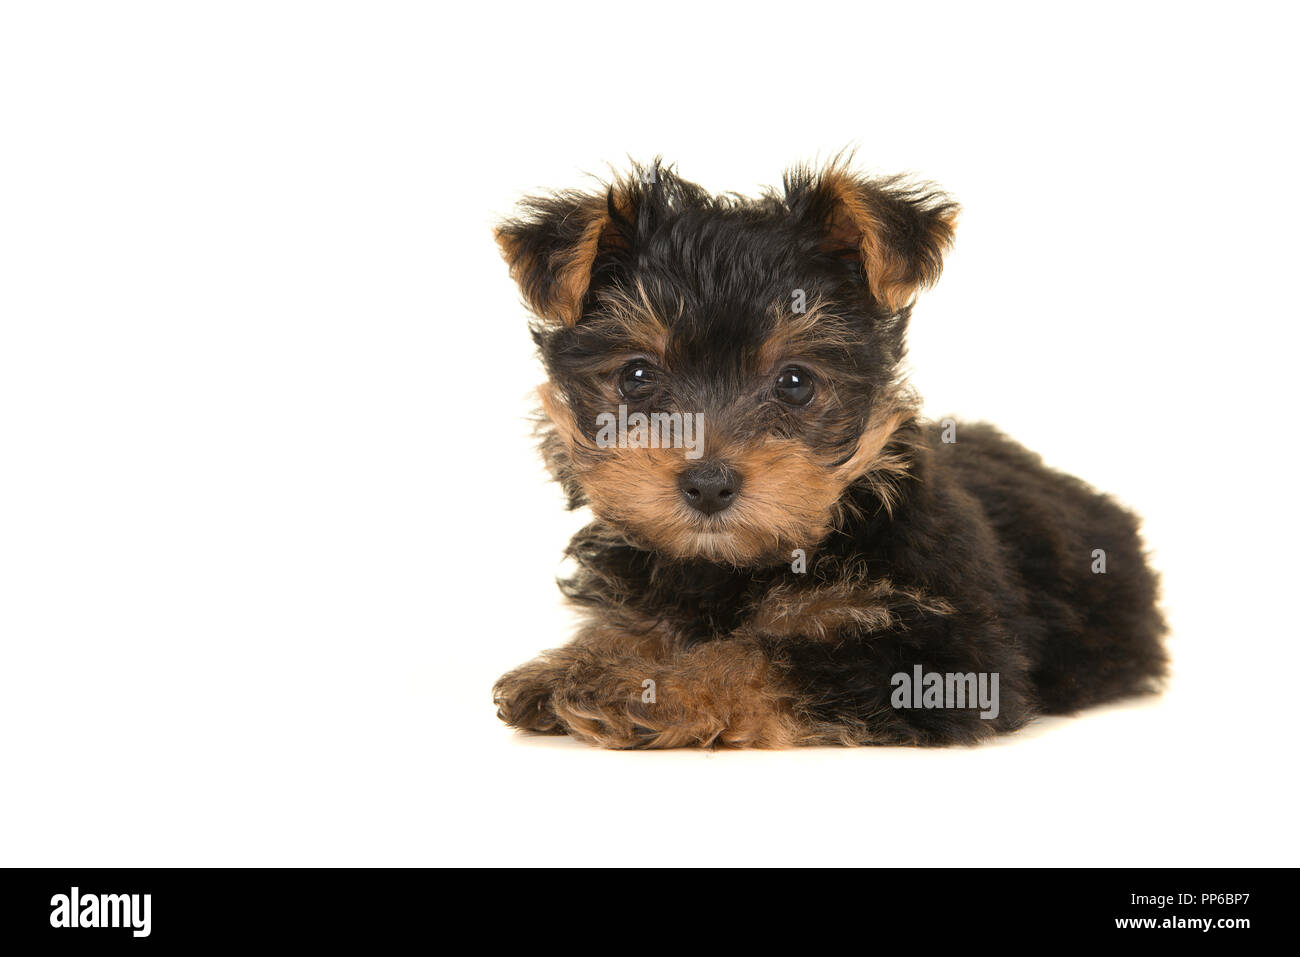 Cute Yorkshire Terrier Yorkie Puppy Lying Down Looking At The